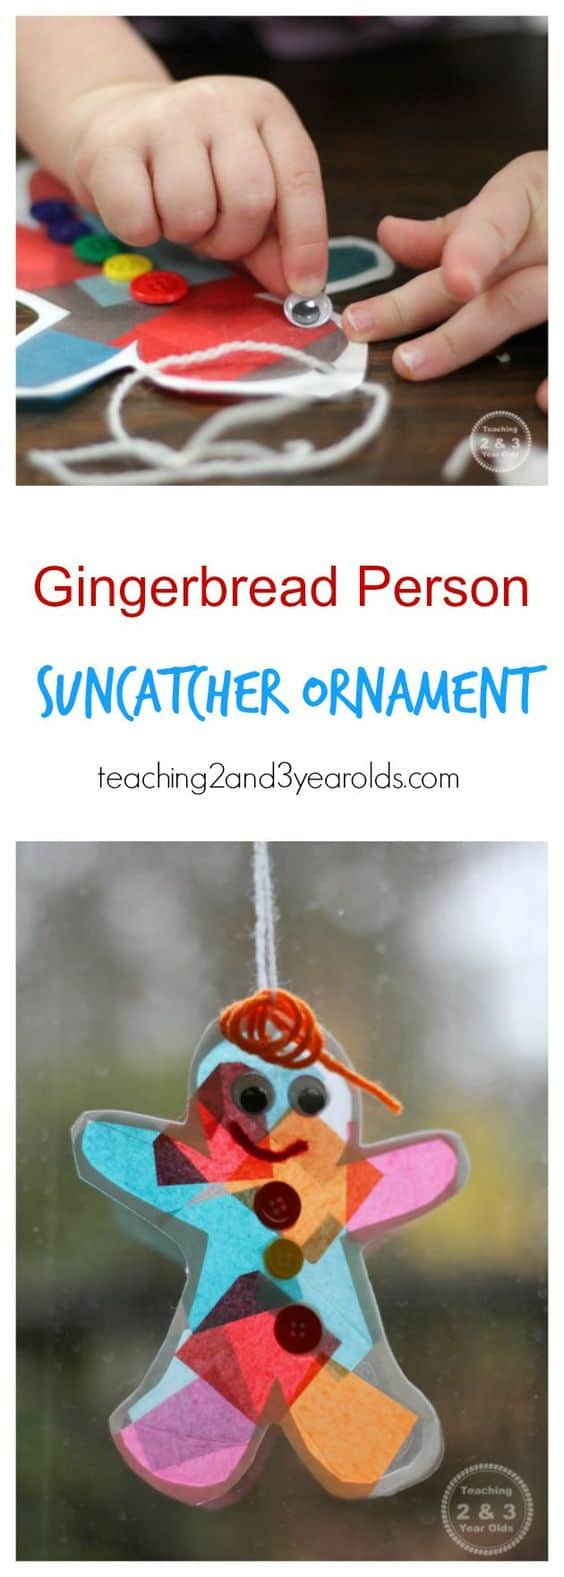 gingerbread-ornament